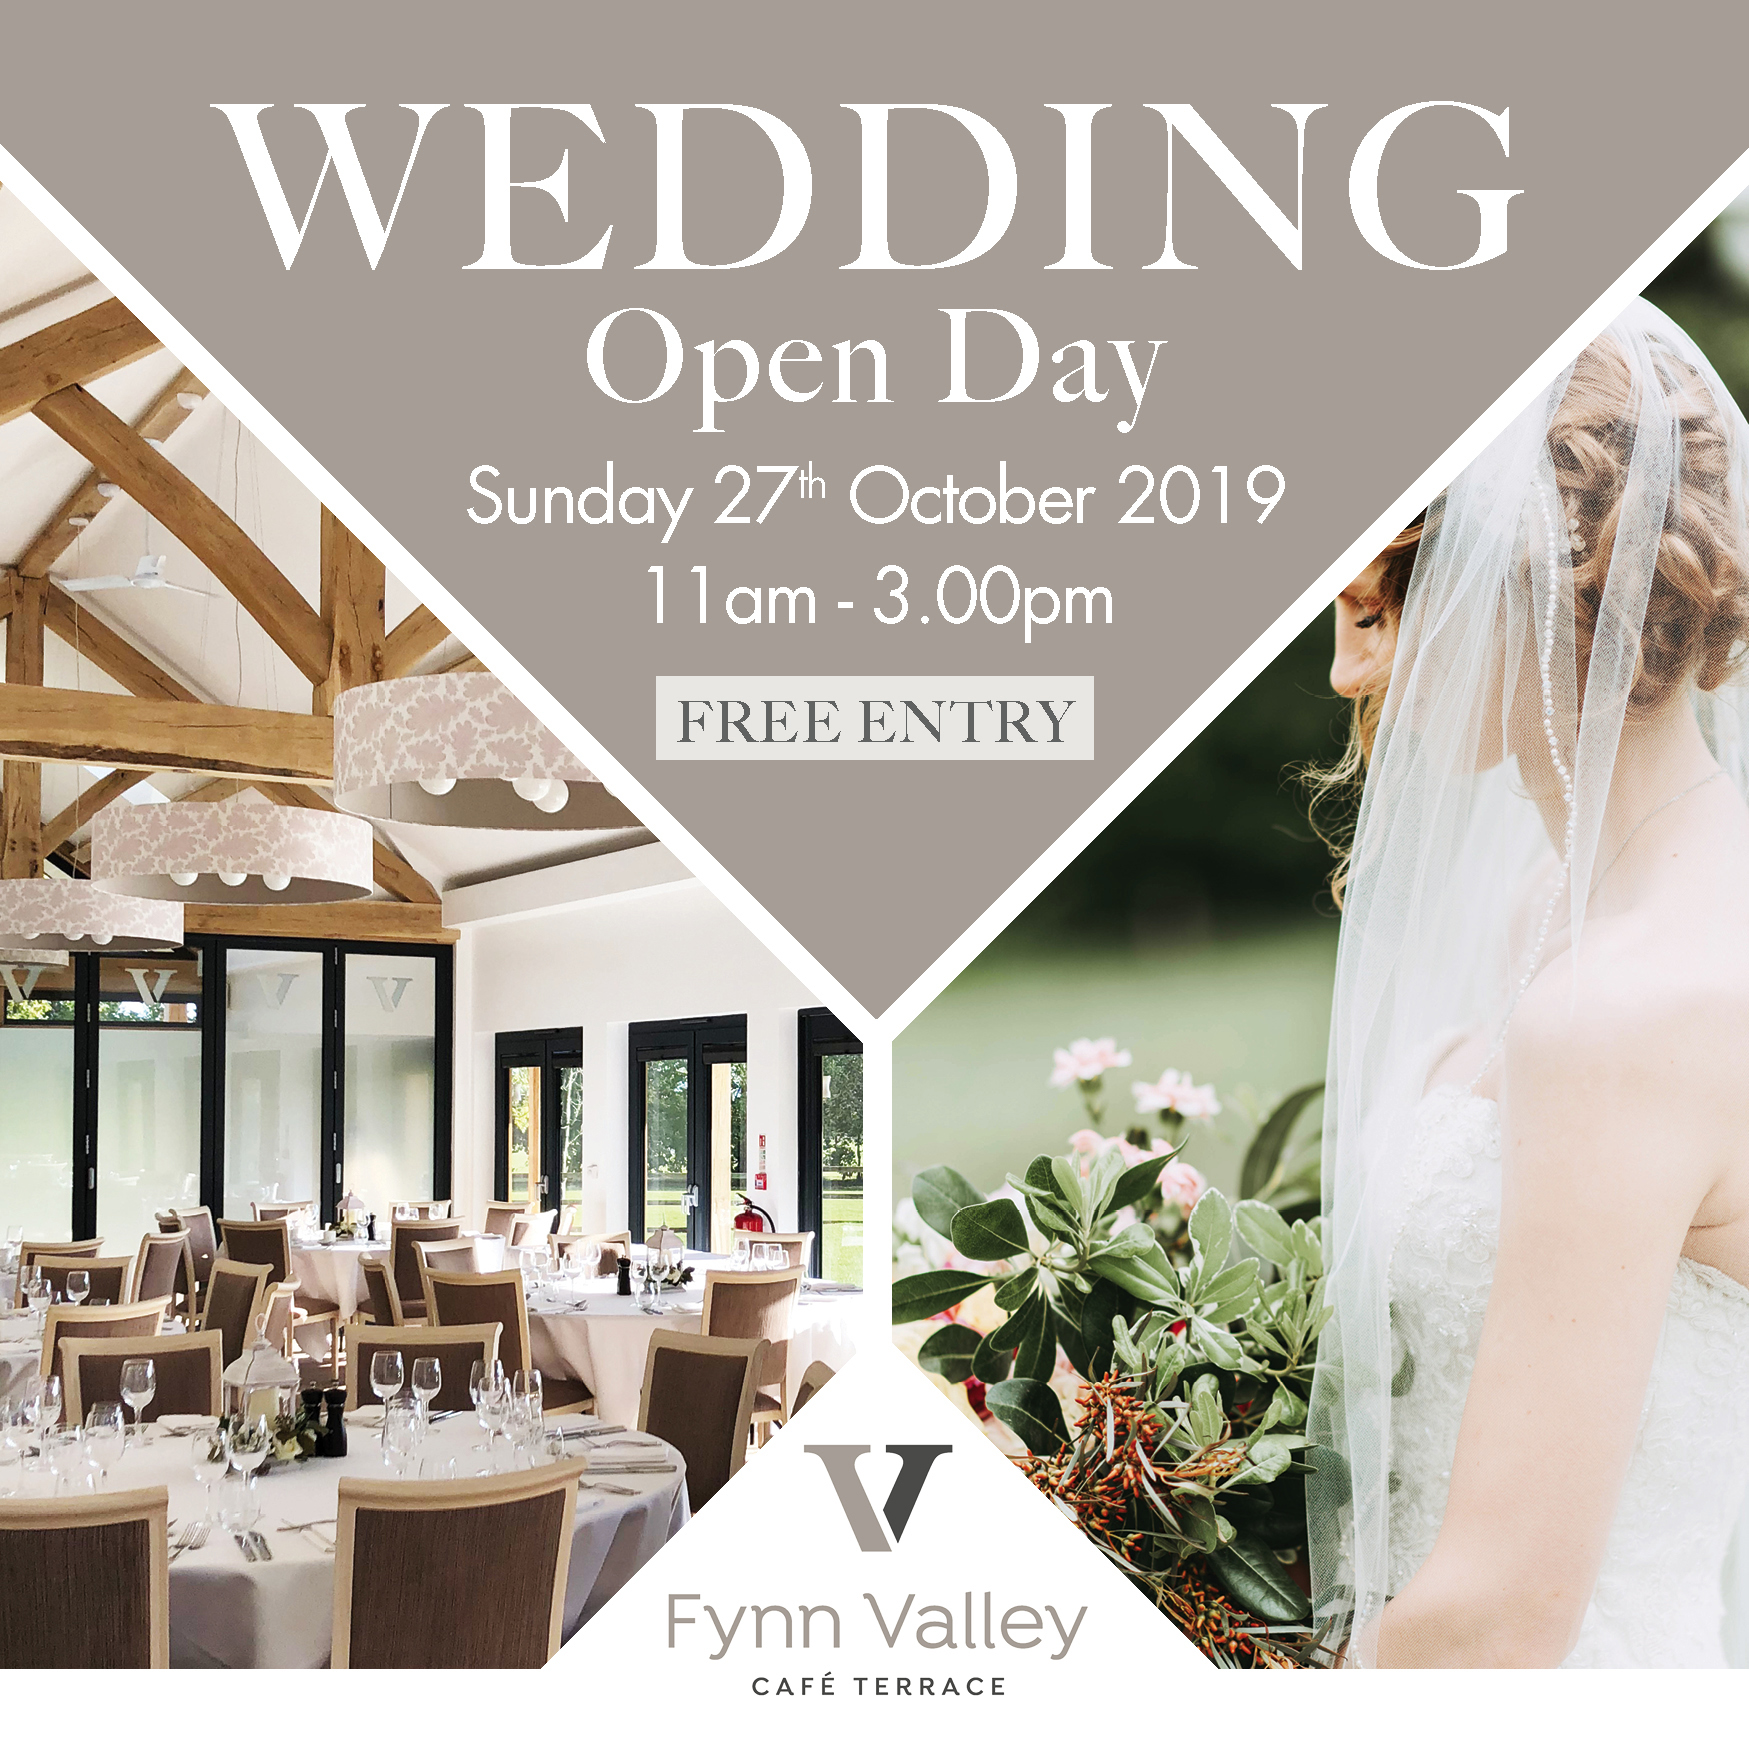 A5 Wedding open day oct 2019 advert cropped_v1.jpg